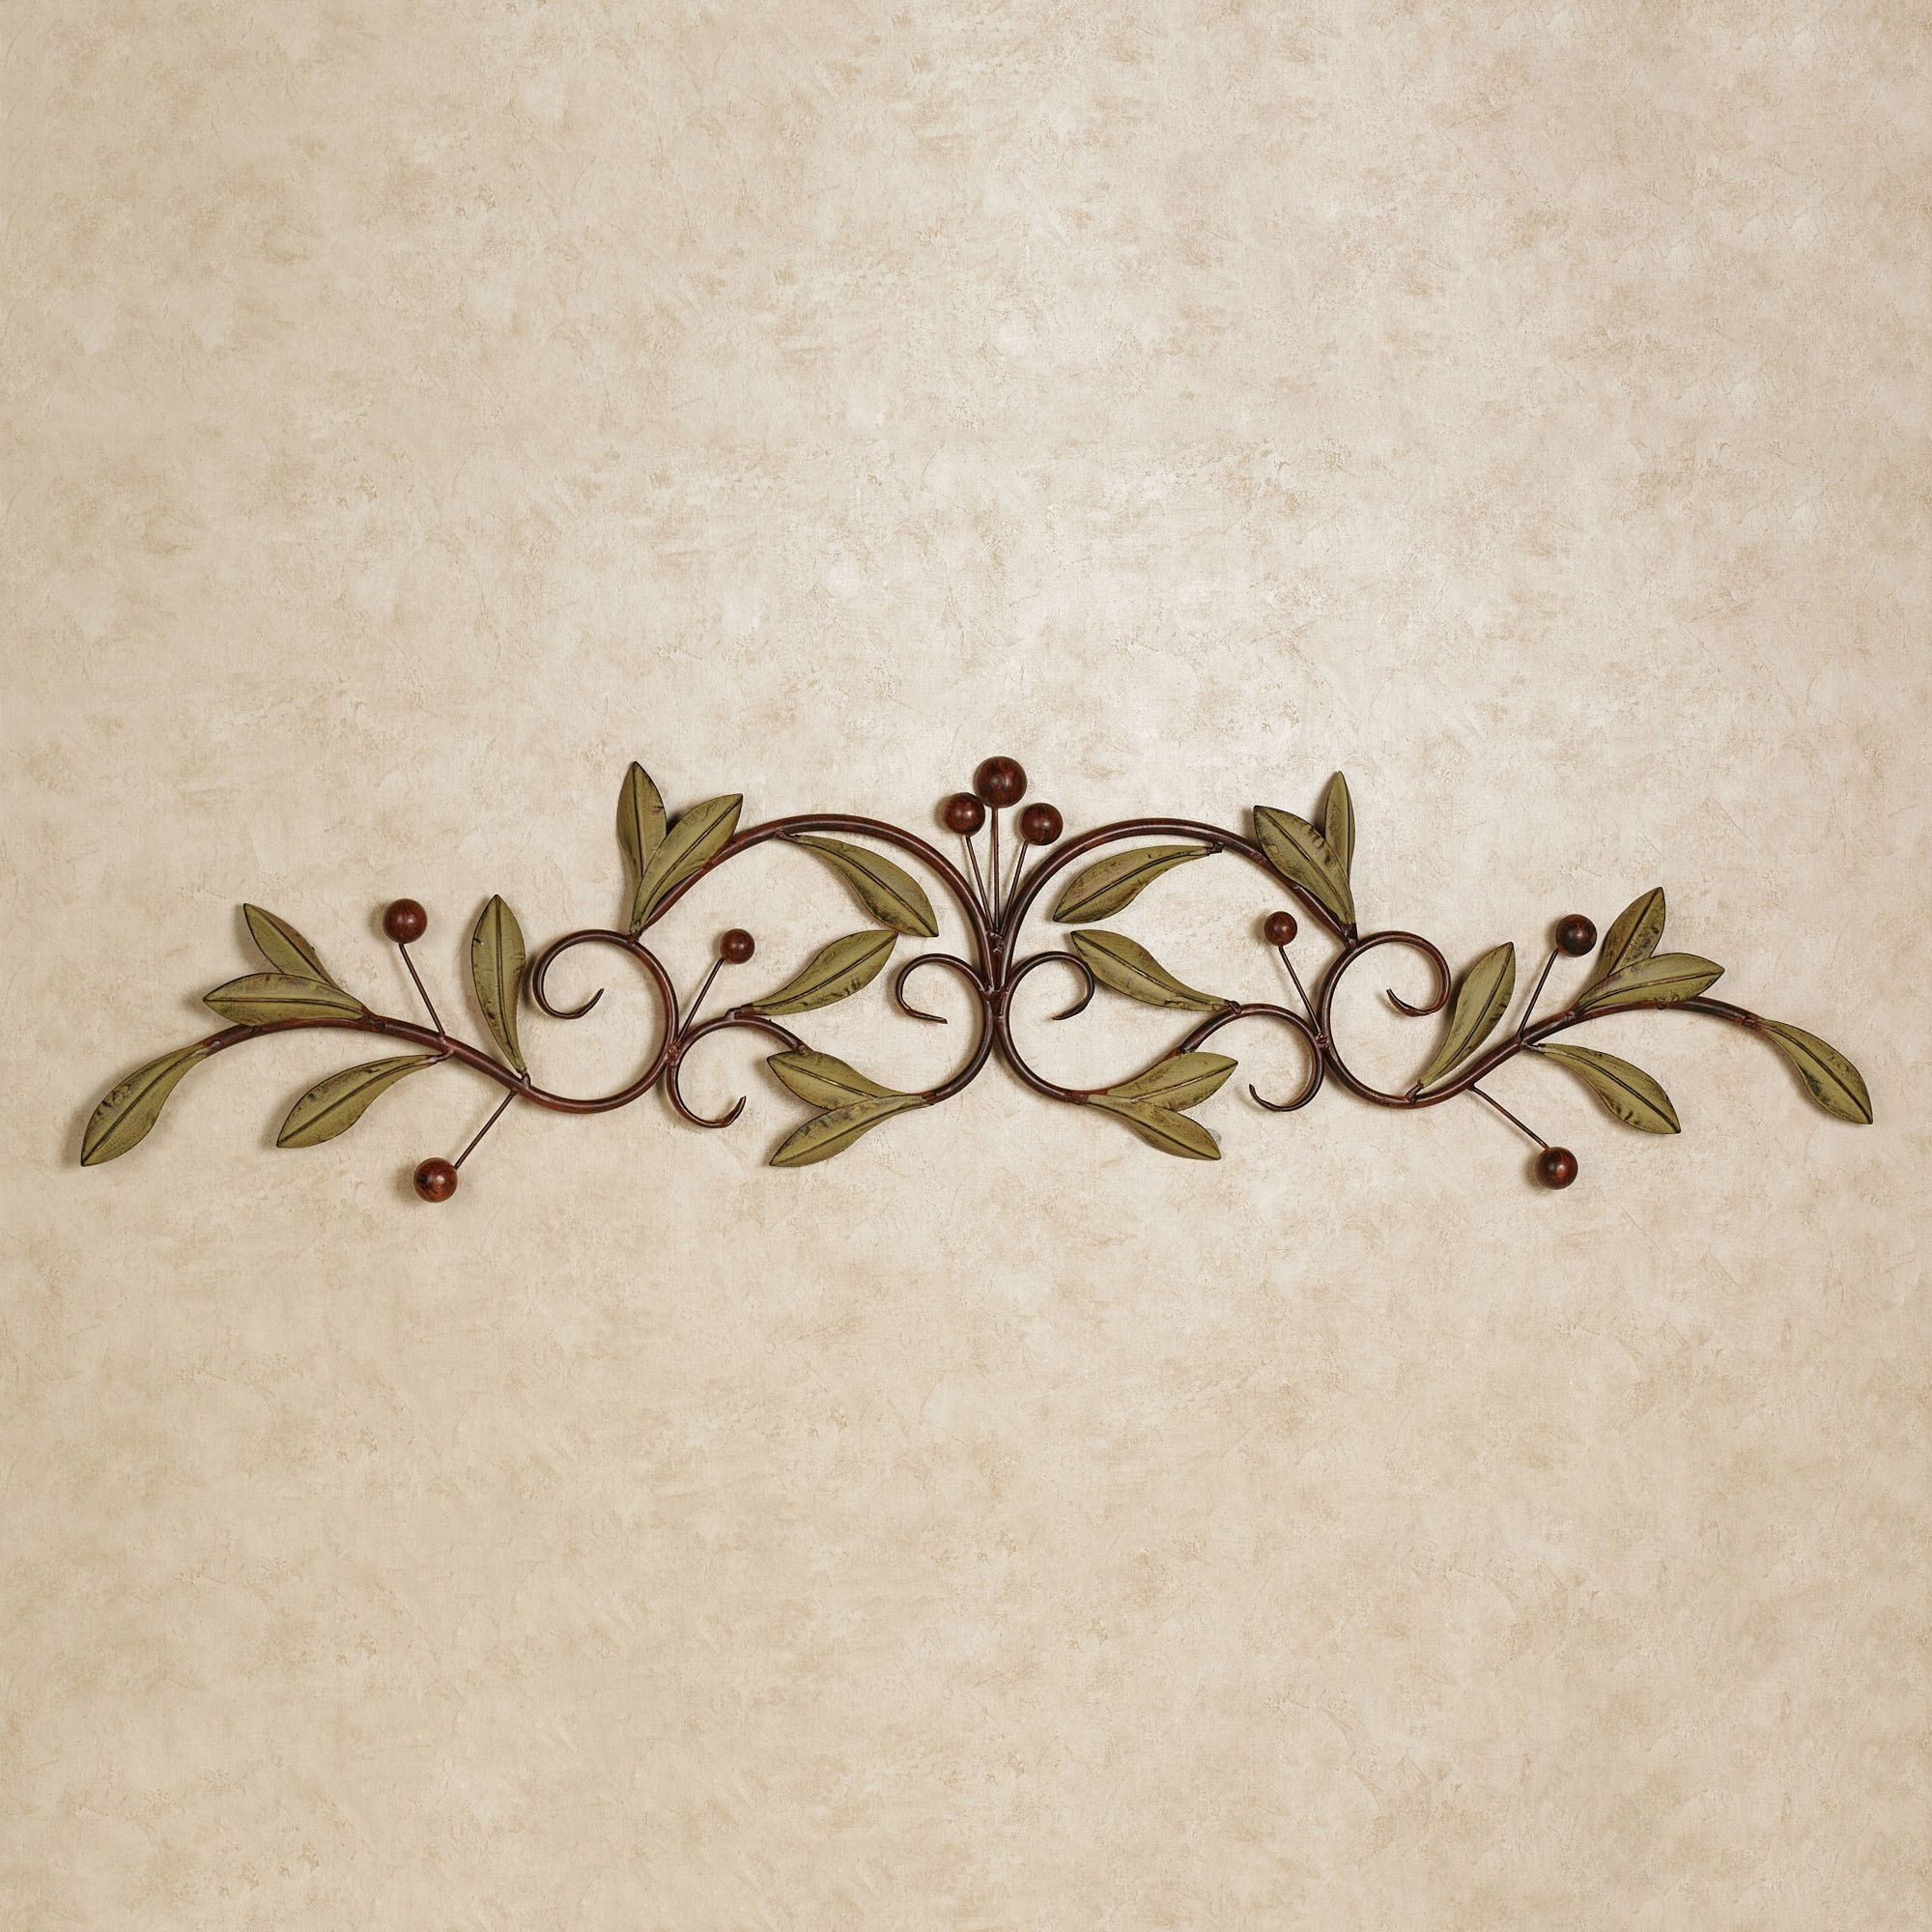 Bedroom : Round Wall Decor Iron Wall Art Metal Wall Plaques Metal Within Recent Italian Plaques Wall Art (View 2 of 15)